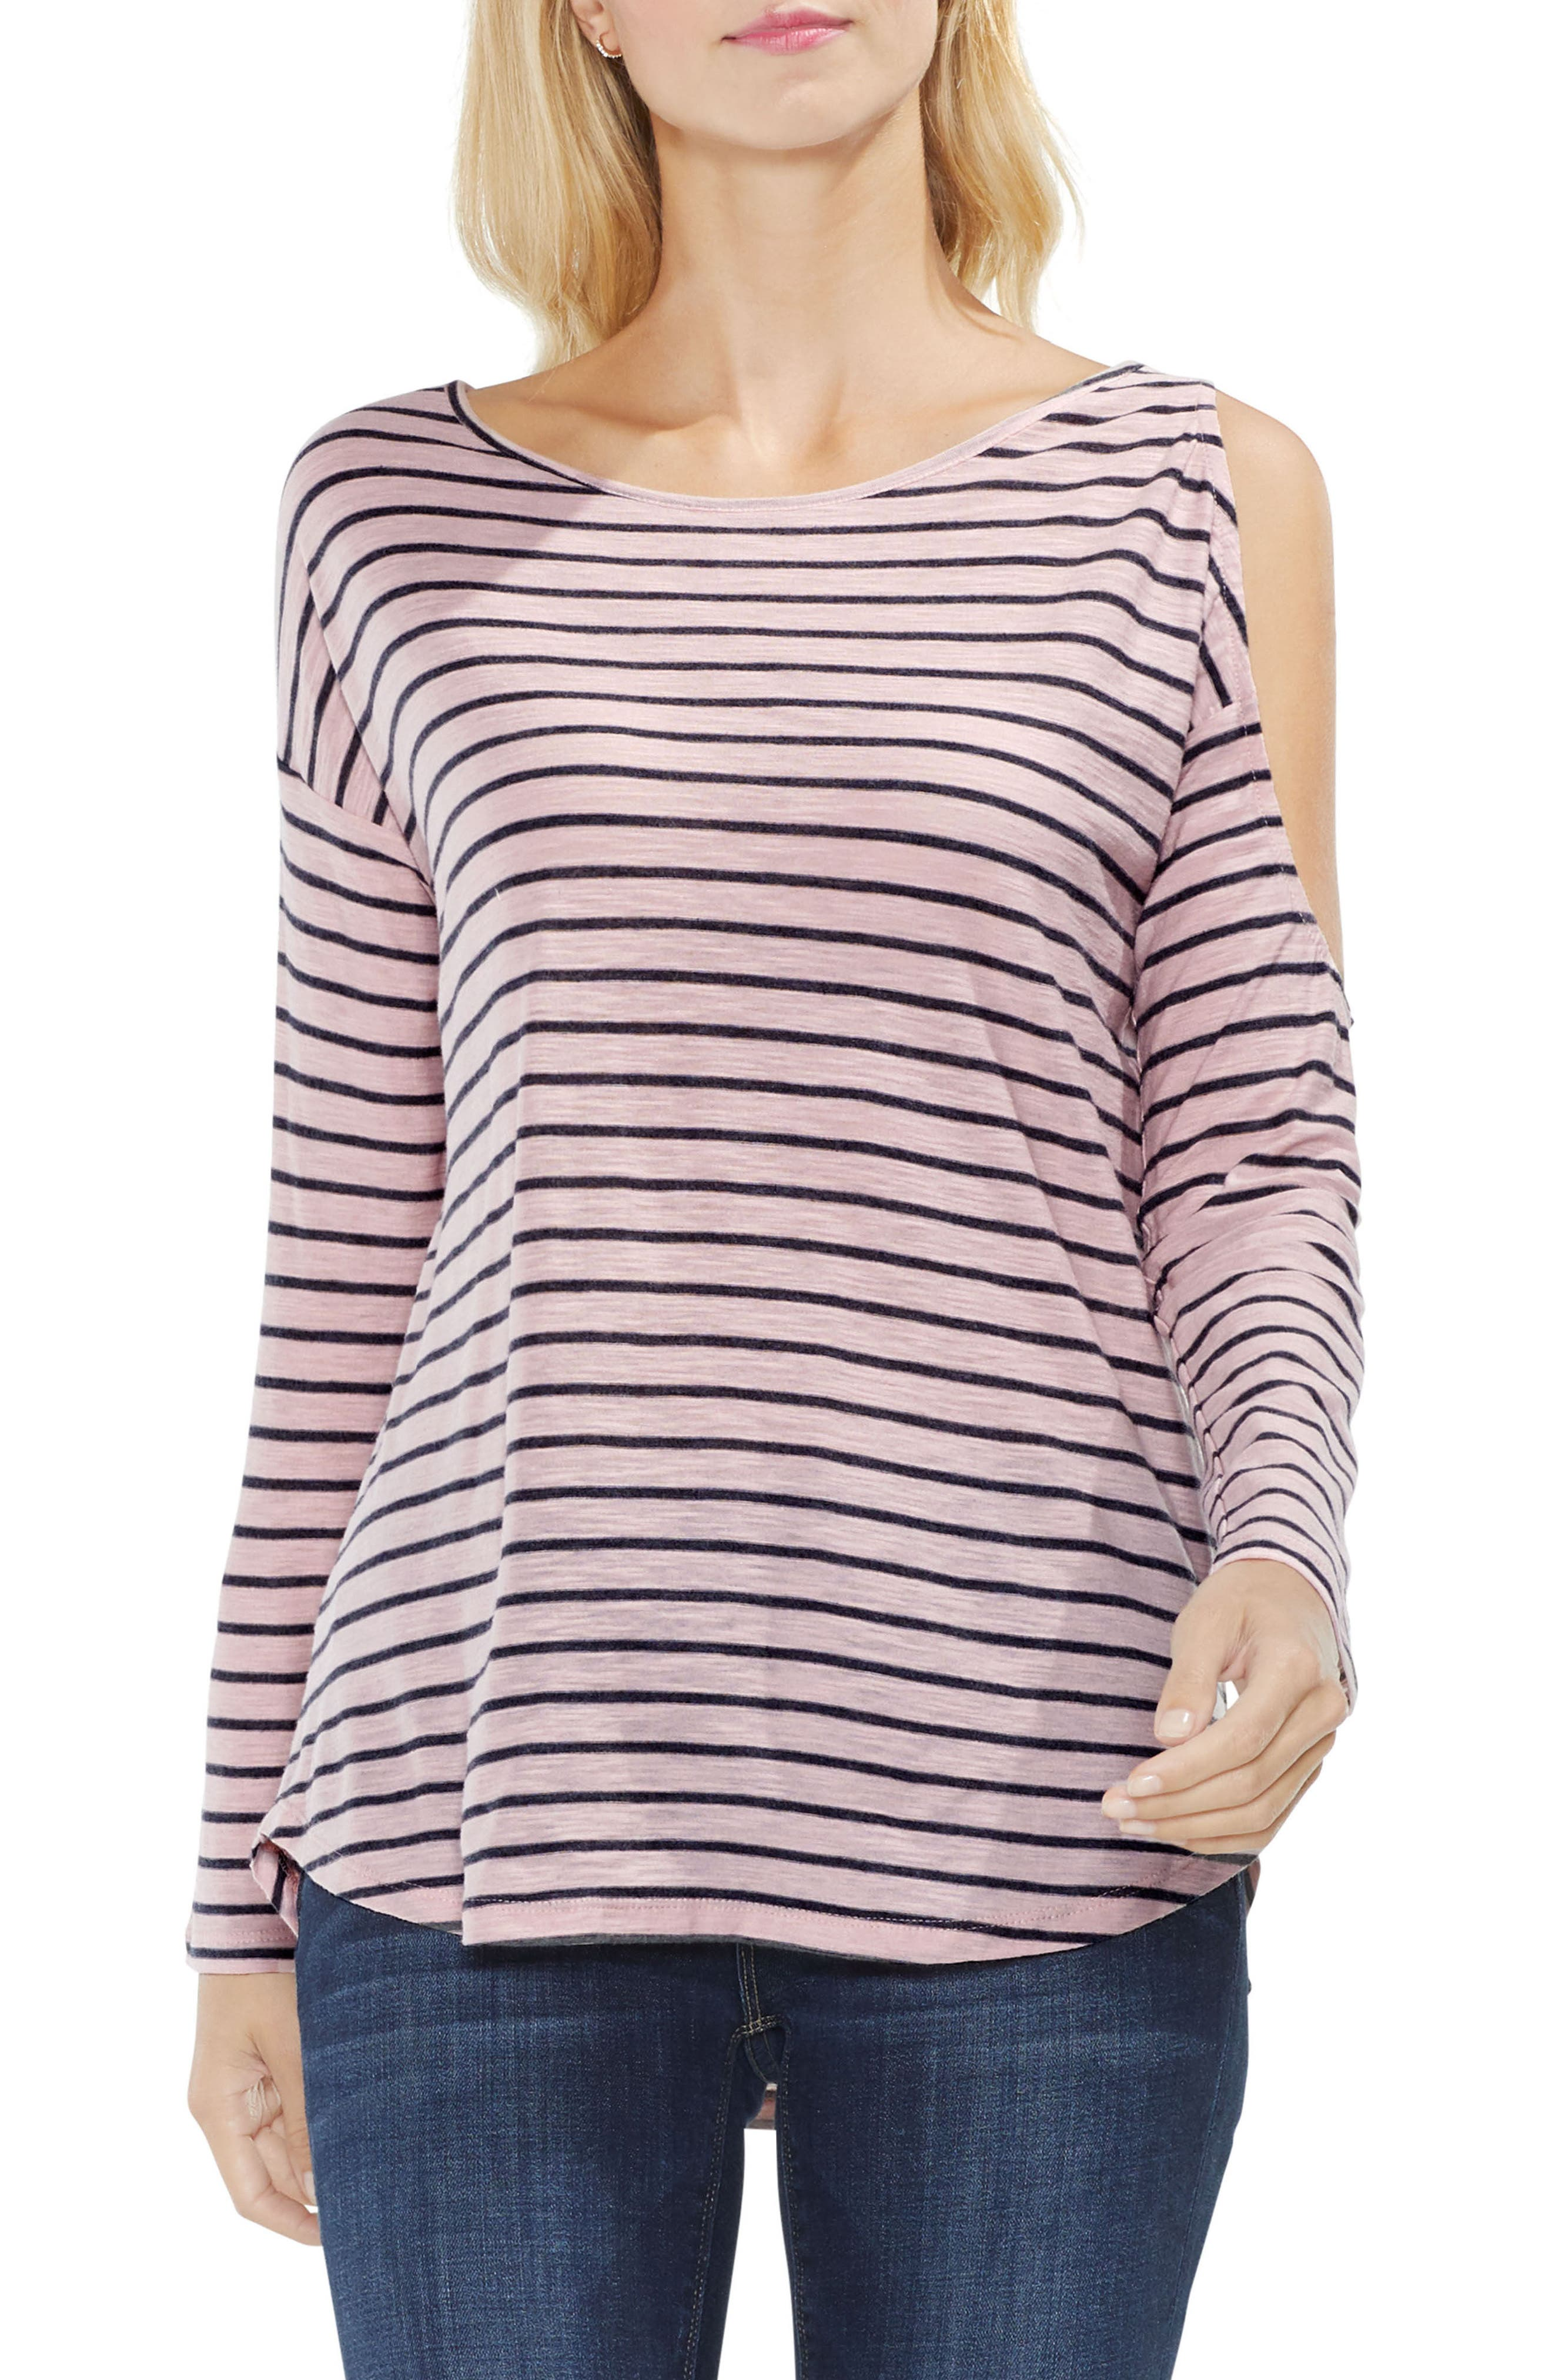 Alternate Image 1 Selected - Two by Vince Camuto Rapid Stripe Top